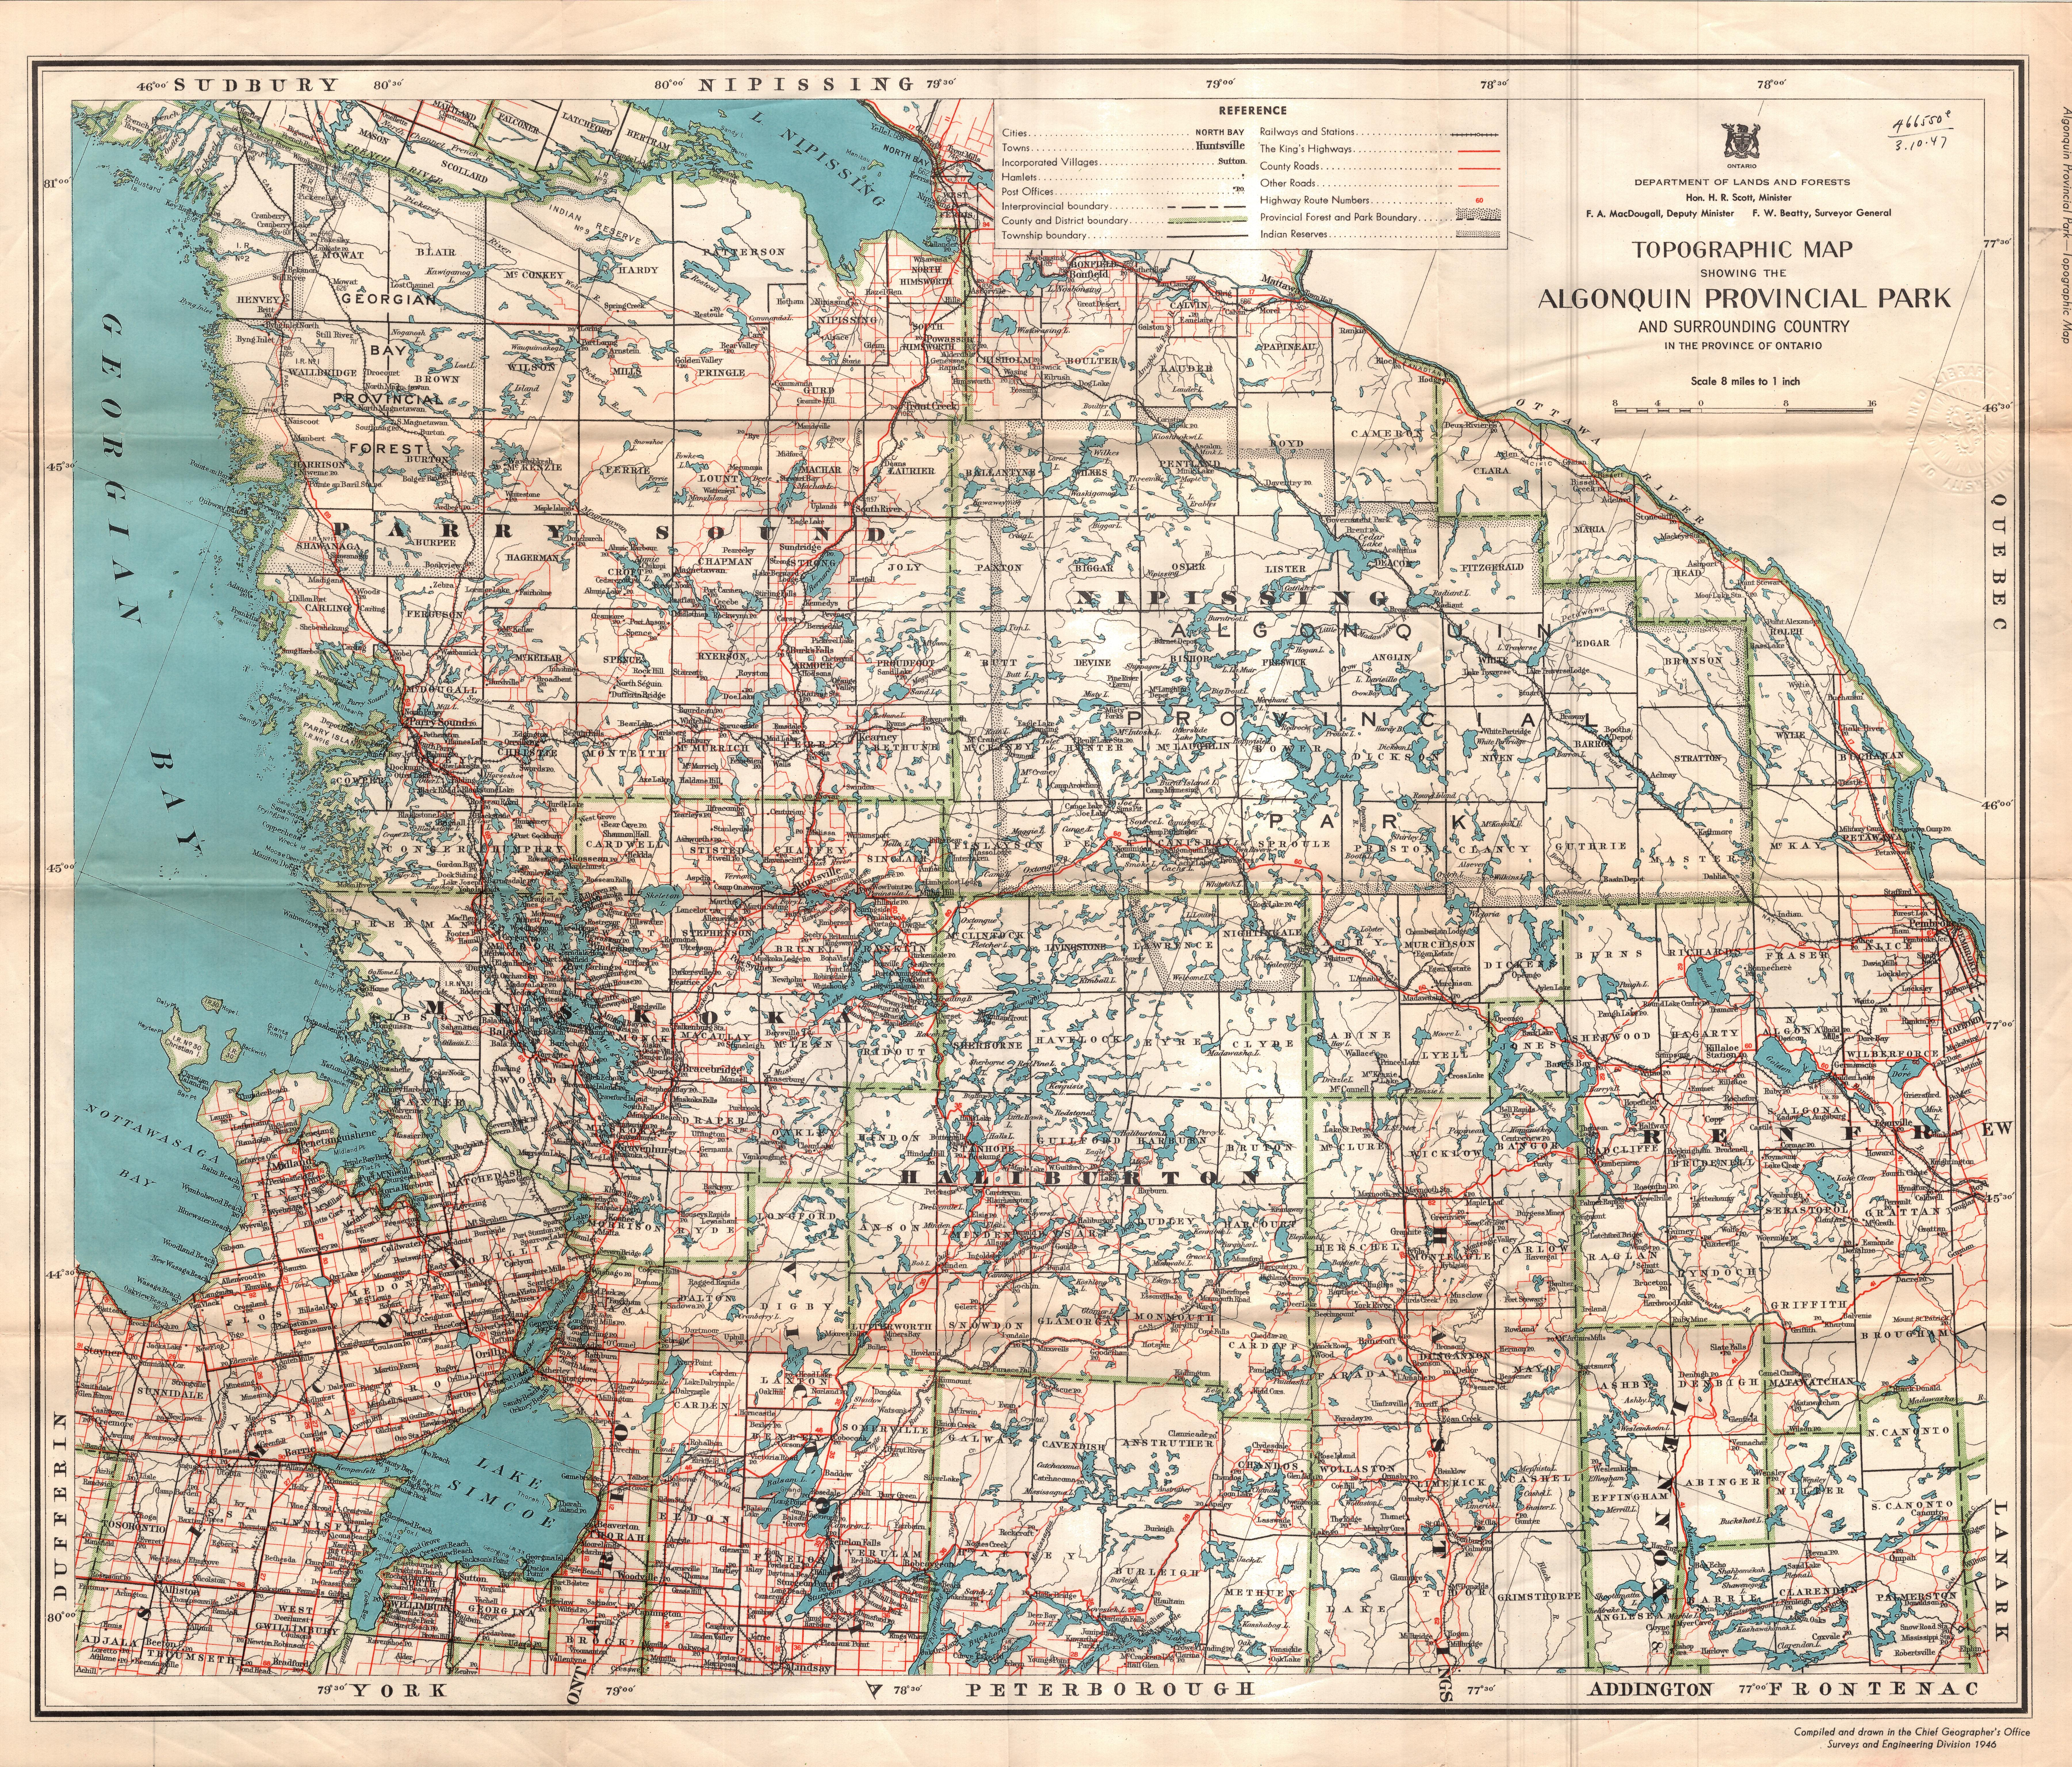 Ontario Topographic Map.Topographic Map Showing The Algonquin Provincial Park And